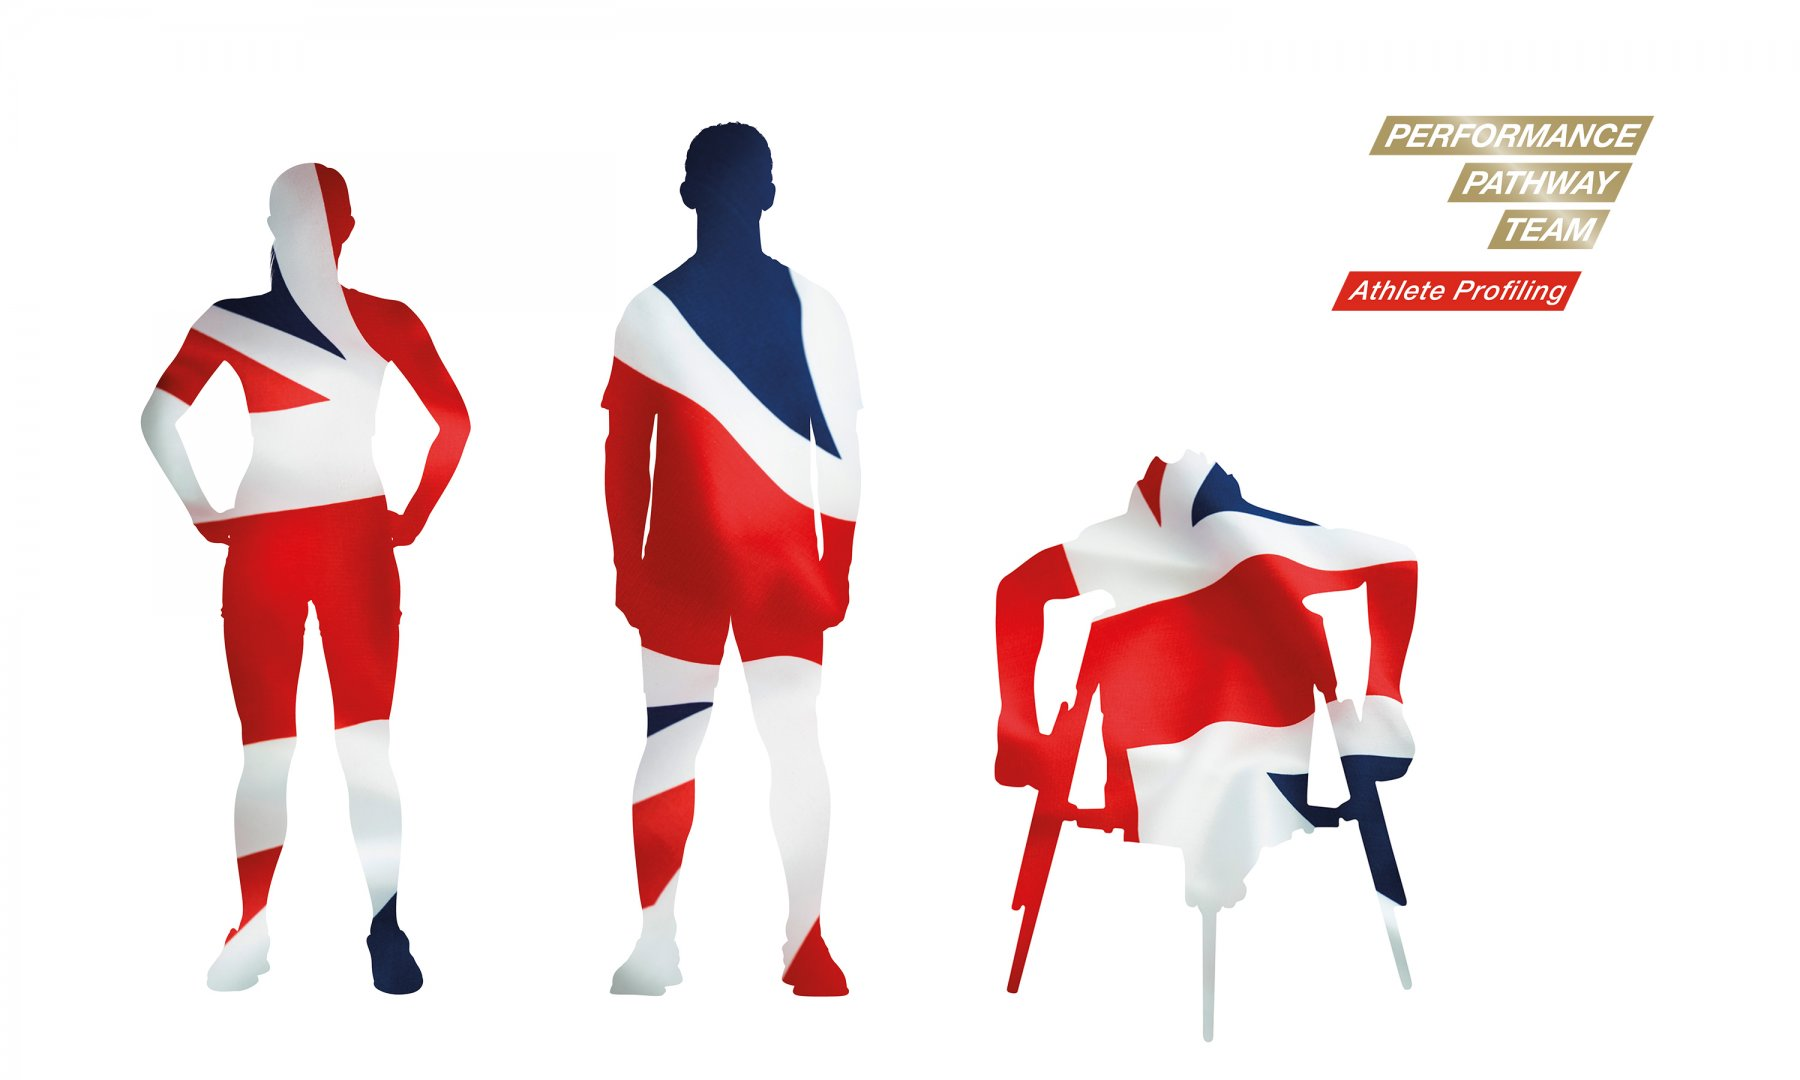 095fe7f50e3dbf UK Sport Pathway Performance Team logo with Project Area descriptor and  iconic athlete silhouettes.